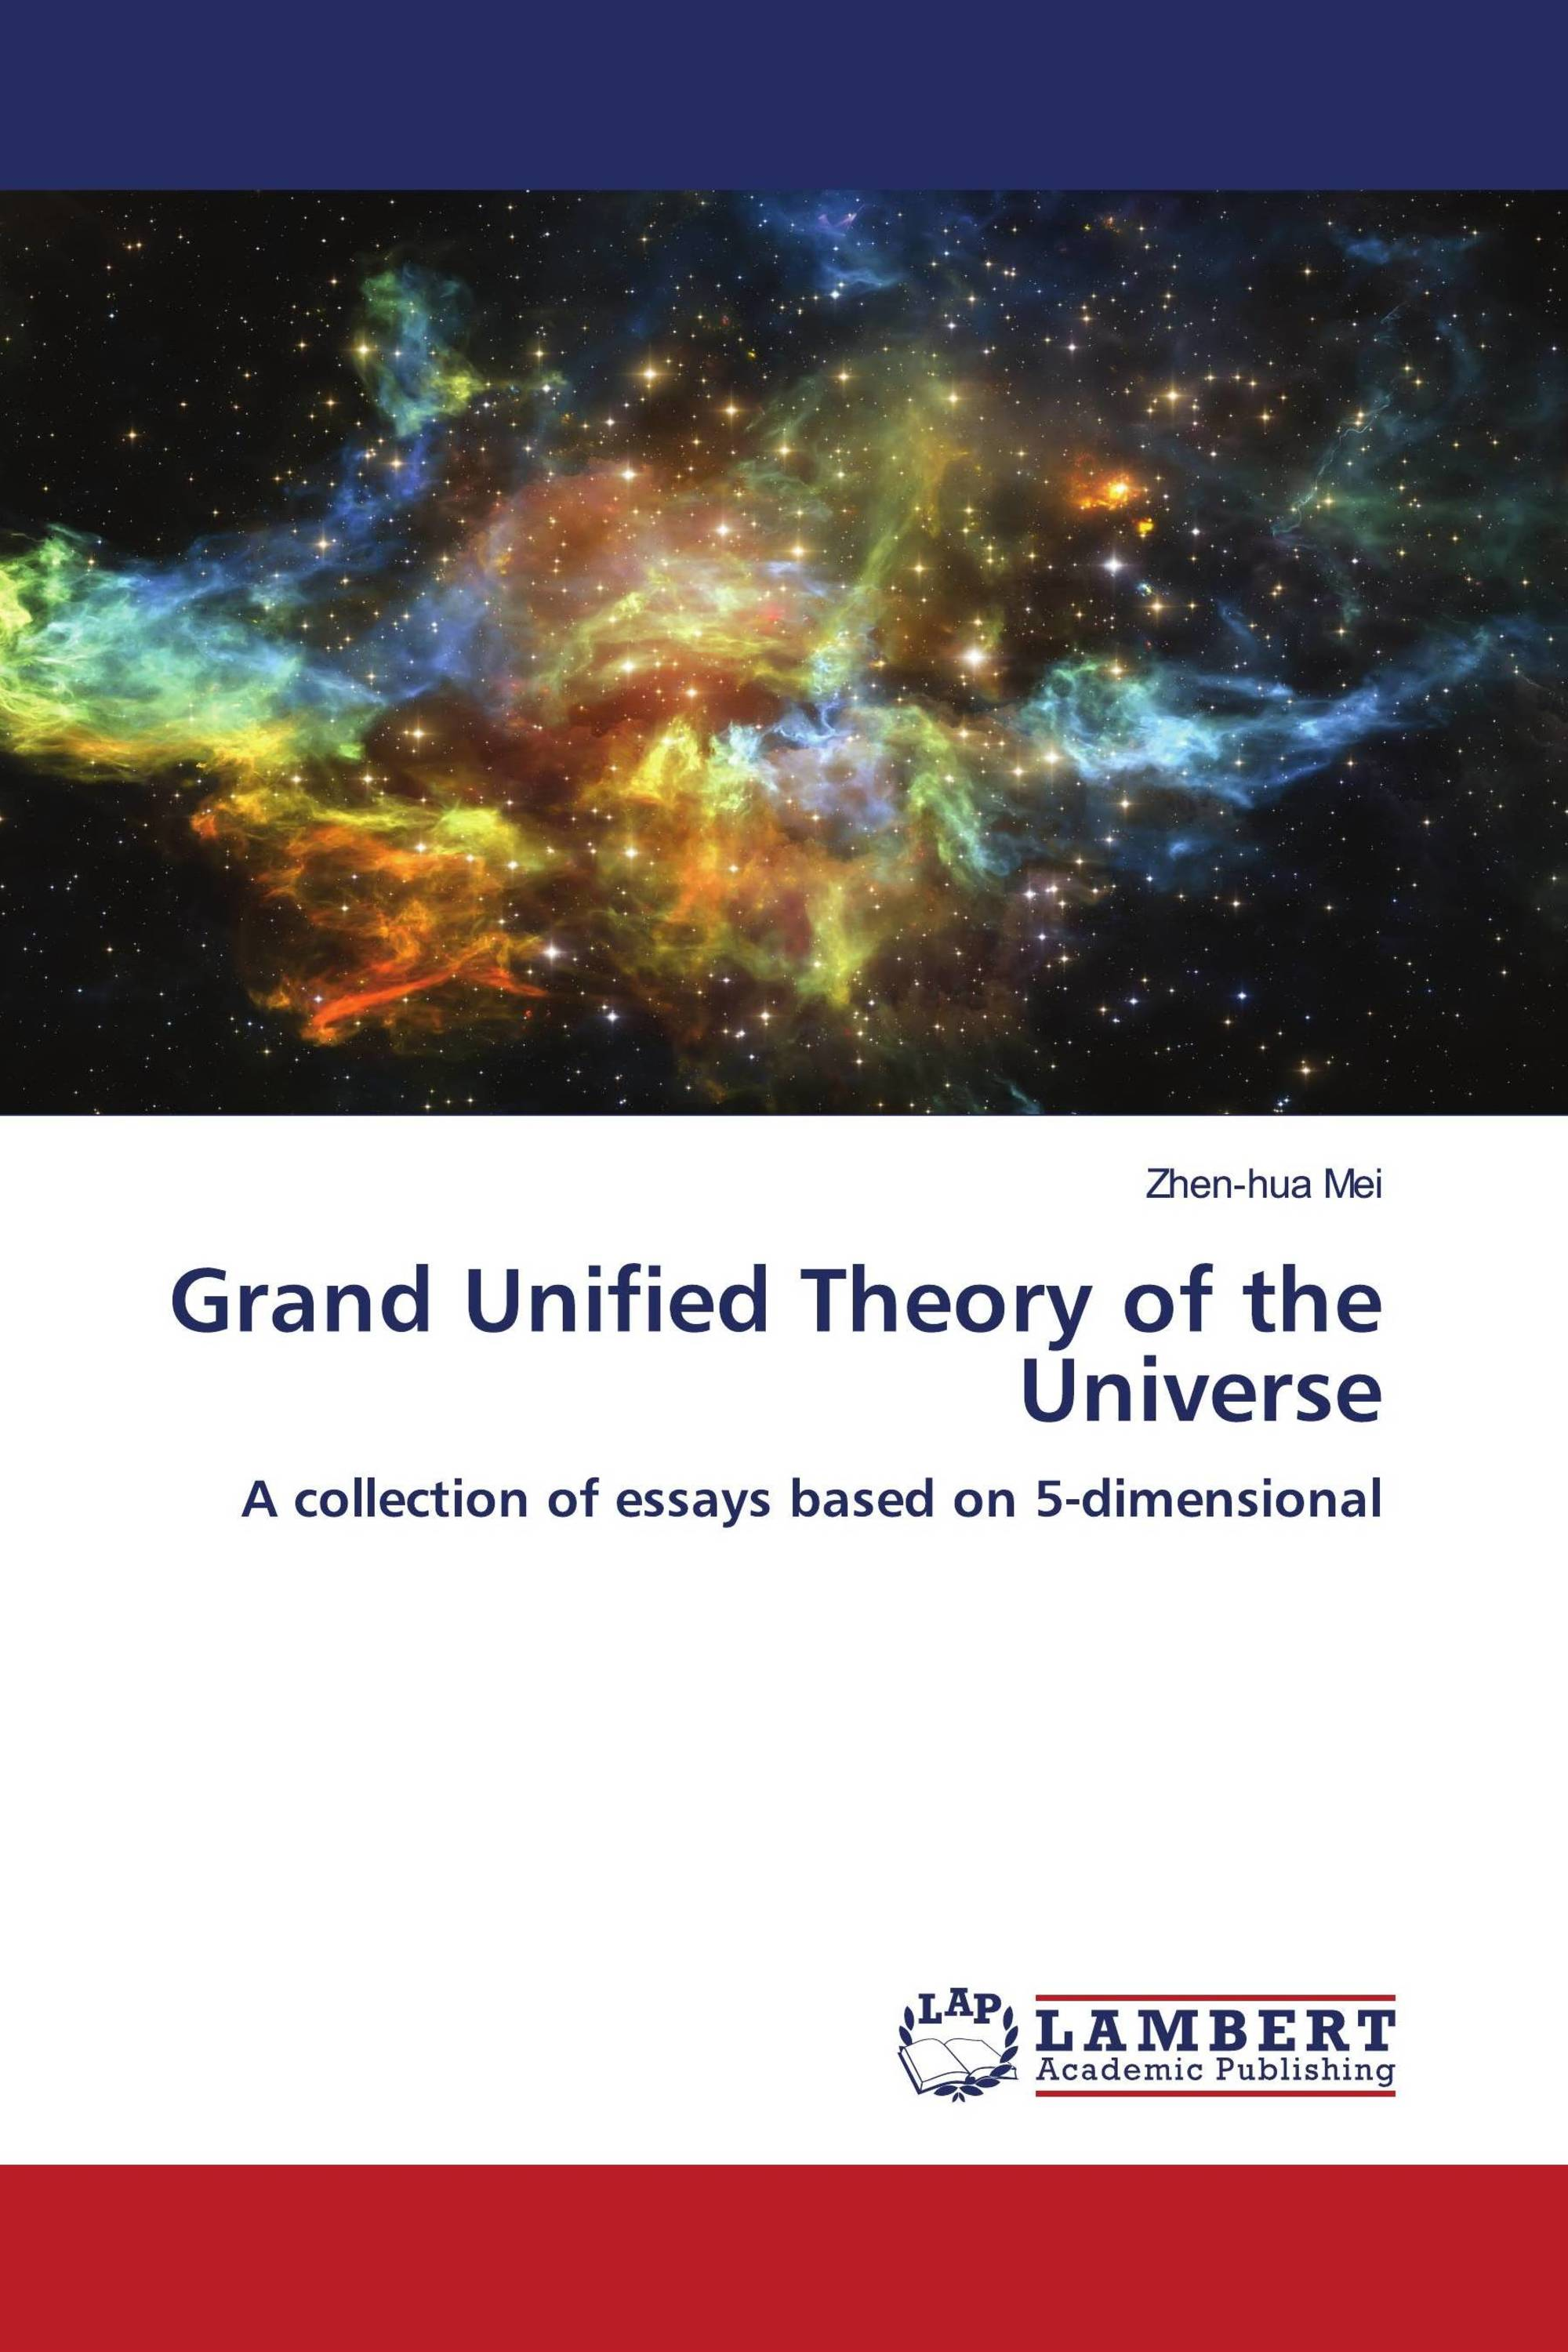 Grand Unified Theory of the Universe